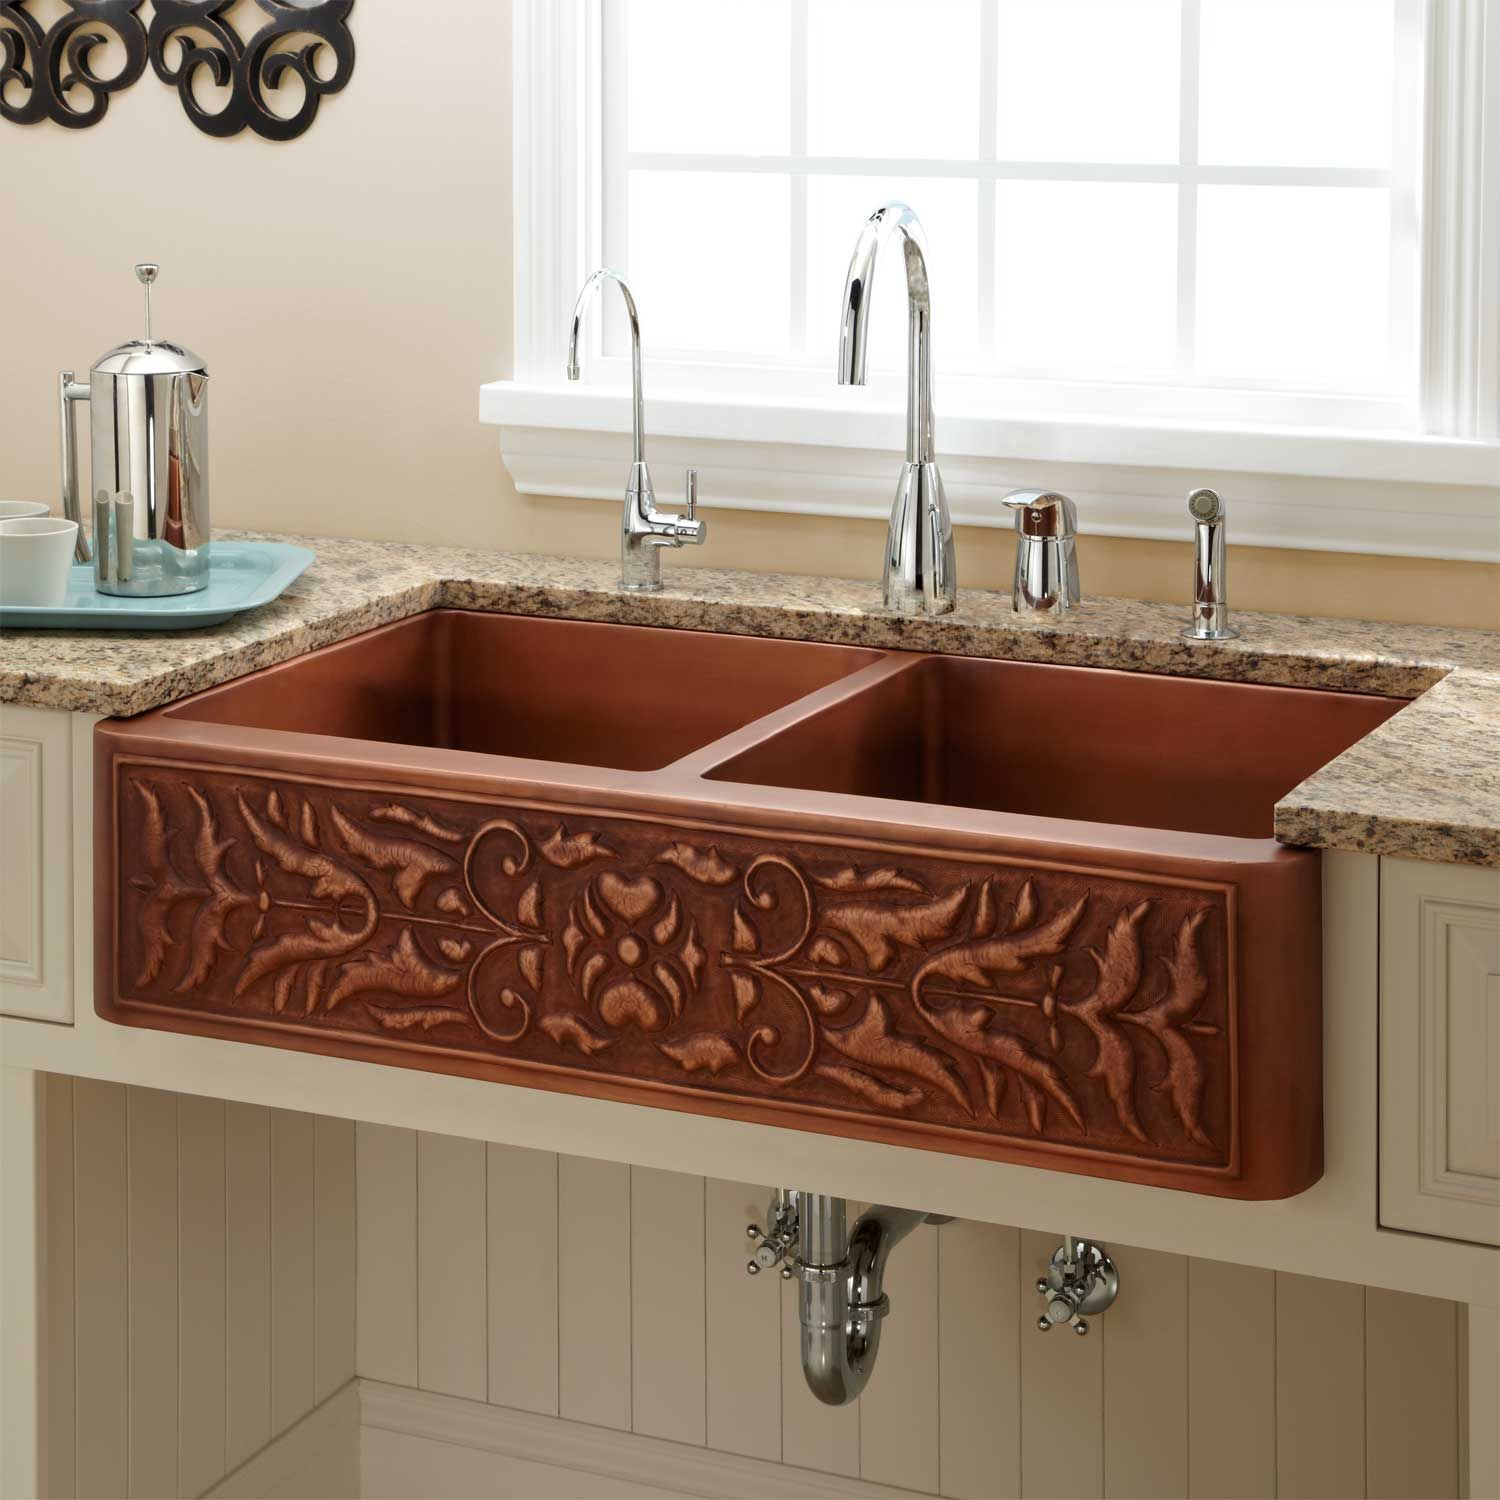 42   fiona 60 40 offset double bowl hammered copper farmhouse sink 42   fiona 60 40 offset double bowl hammered copper farmhouse sink      rh   pinterest com